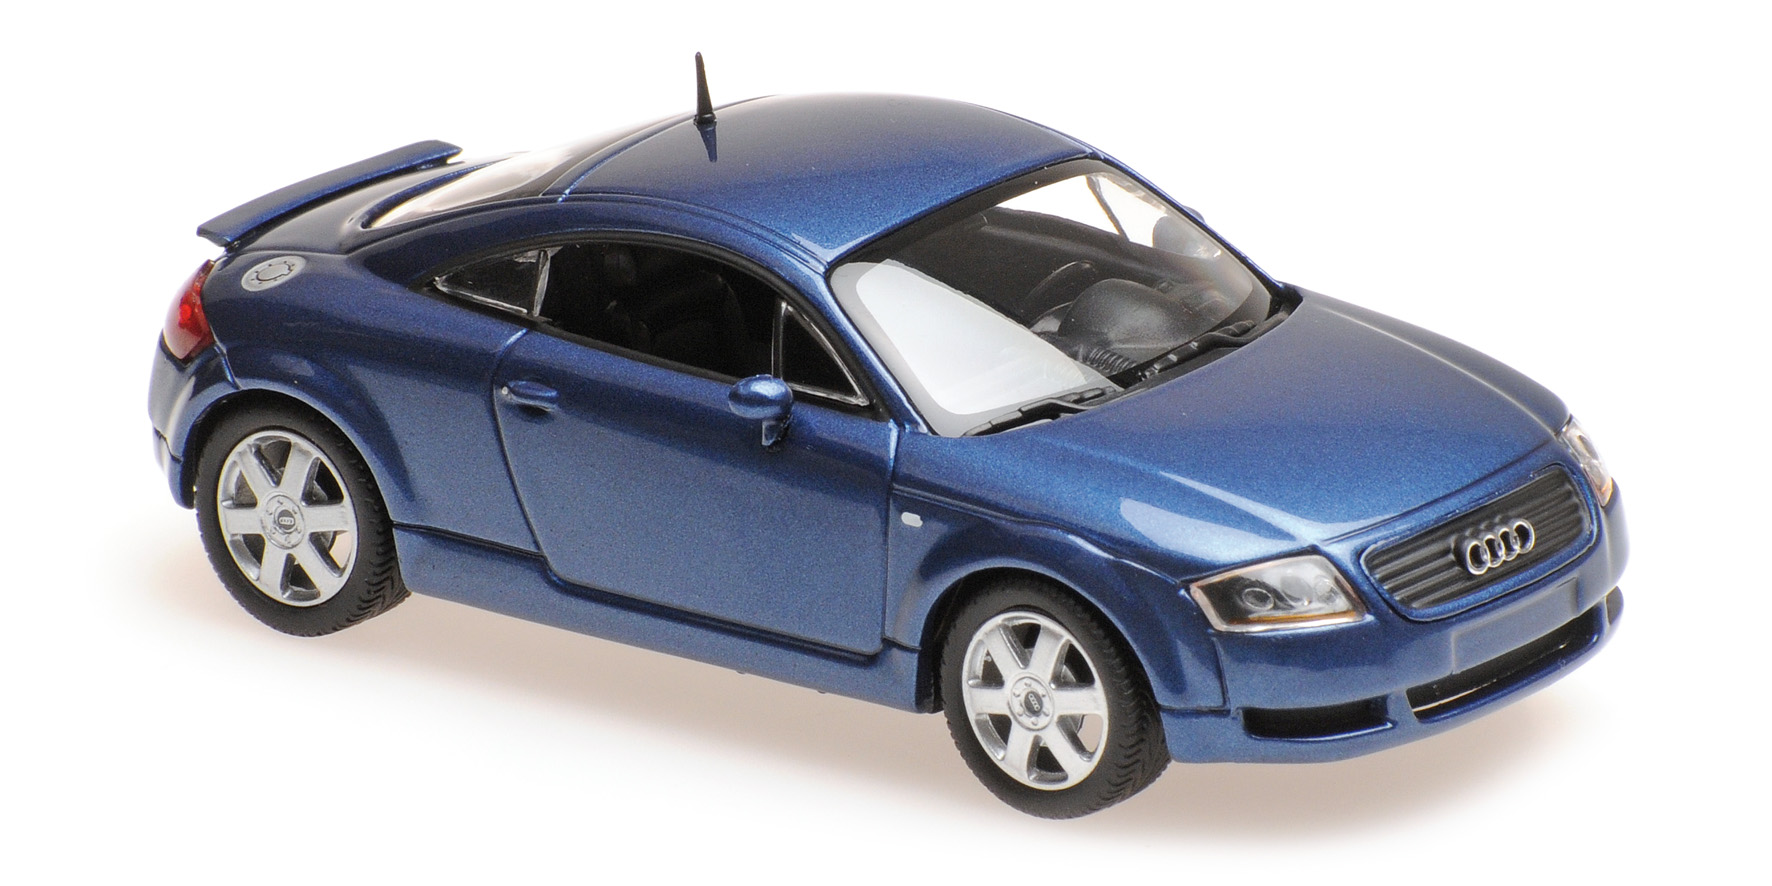 Audi TT Coupe Blauw Metallic